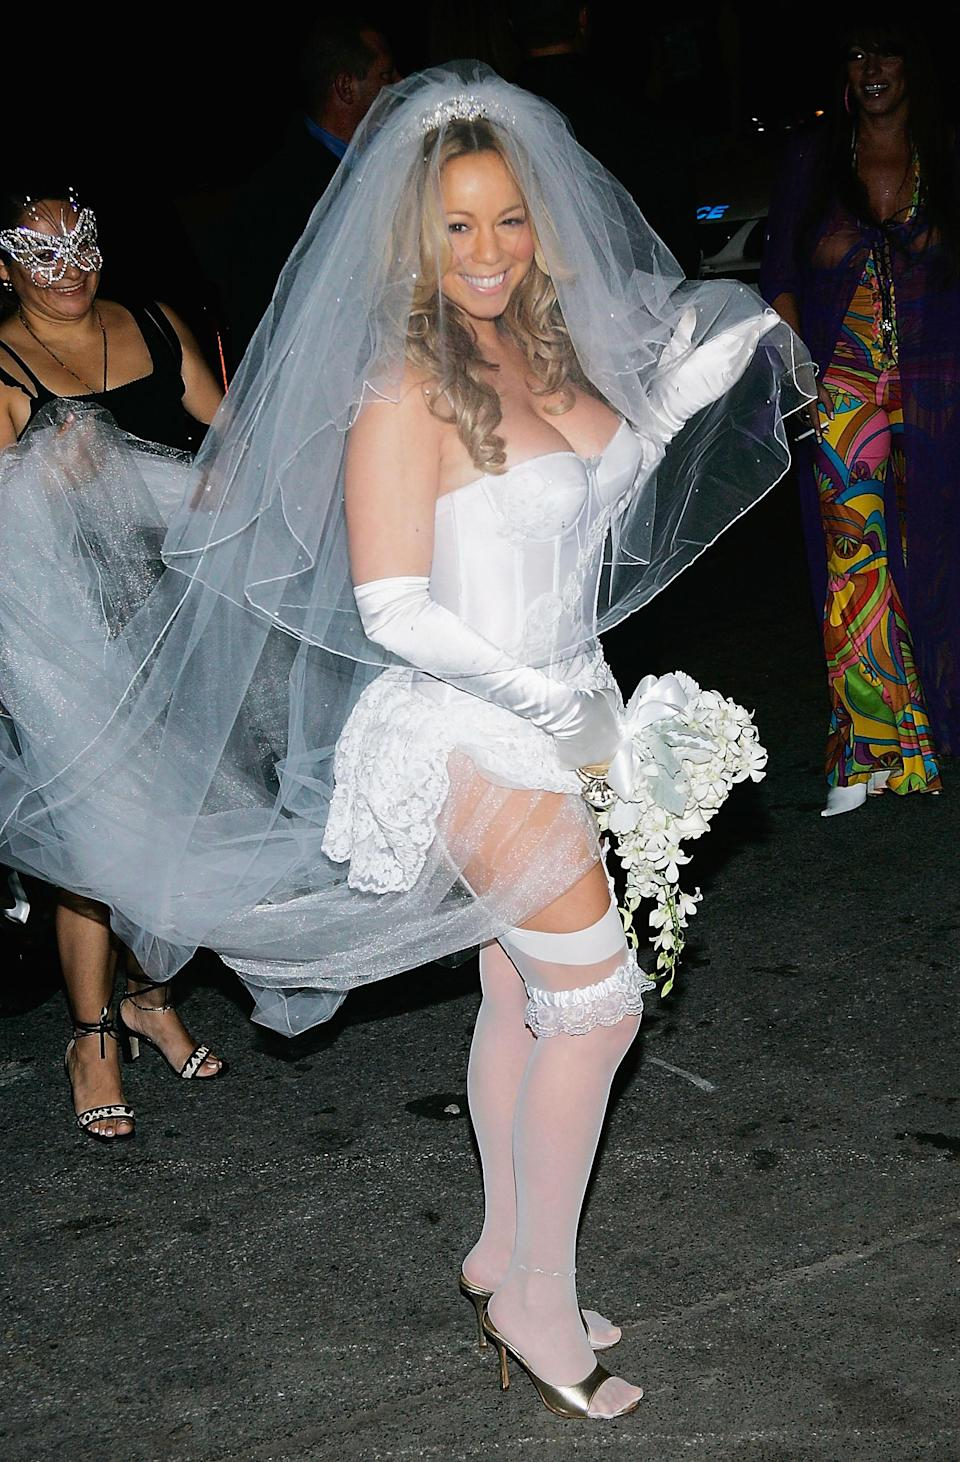 Pictured here is Mariah Carey at a Halloween party in 2004 wearing a costume that might be a little bit basic, sure, but not if you're the elusive chanteuse. Dressing as a bride is common because it's so fun and easy, and you can go as traditional or sexy as you'd like.